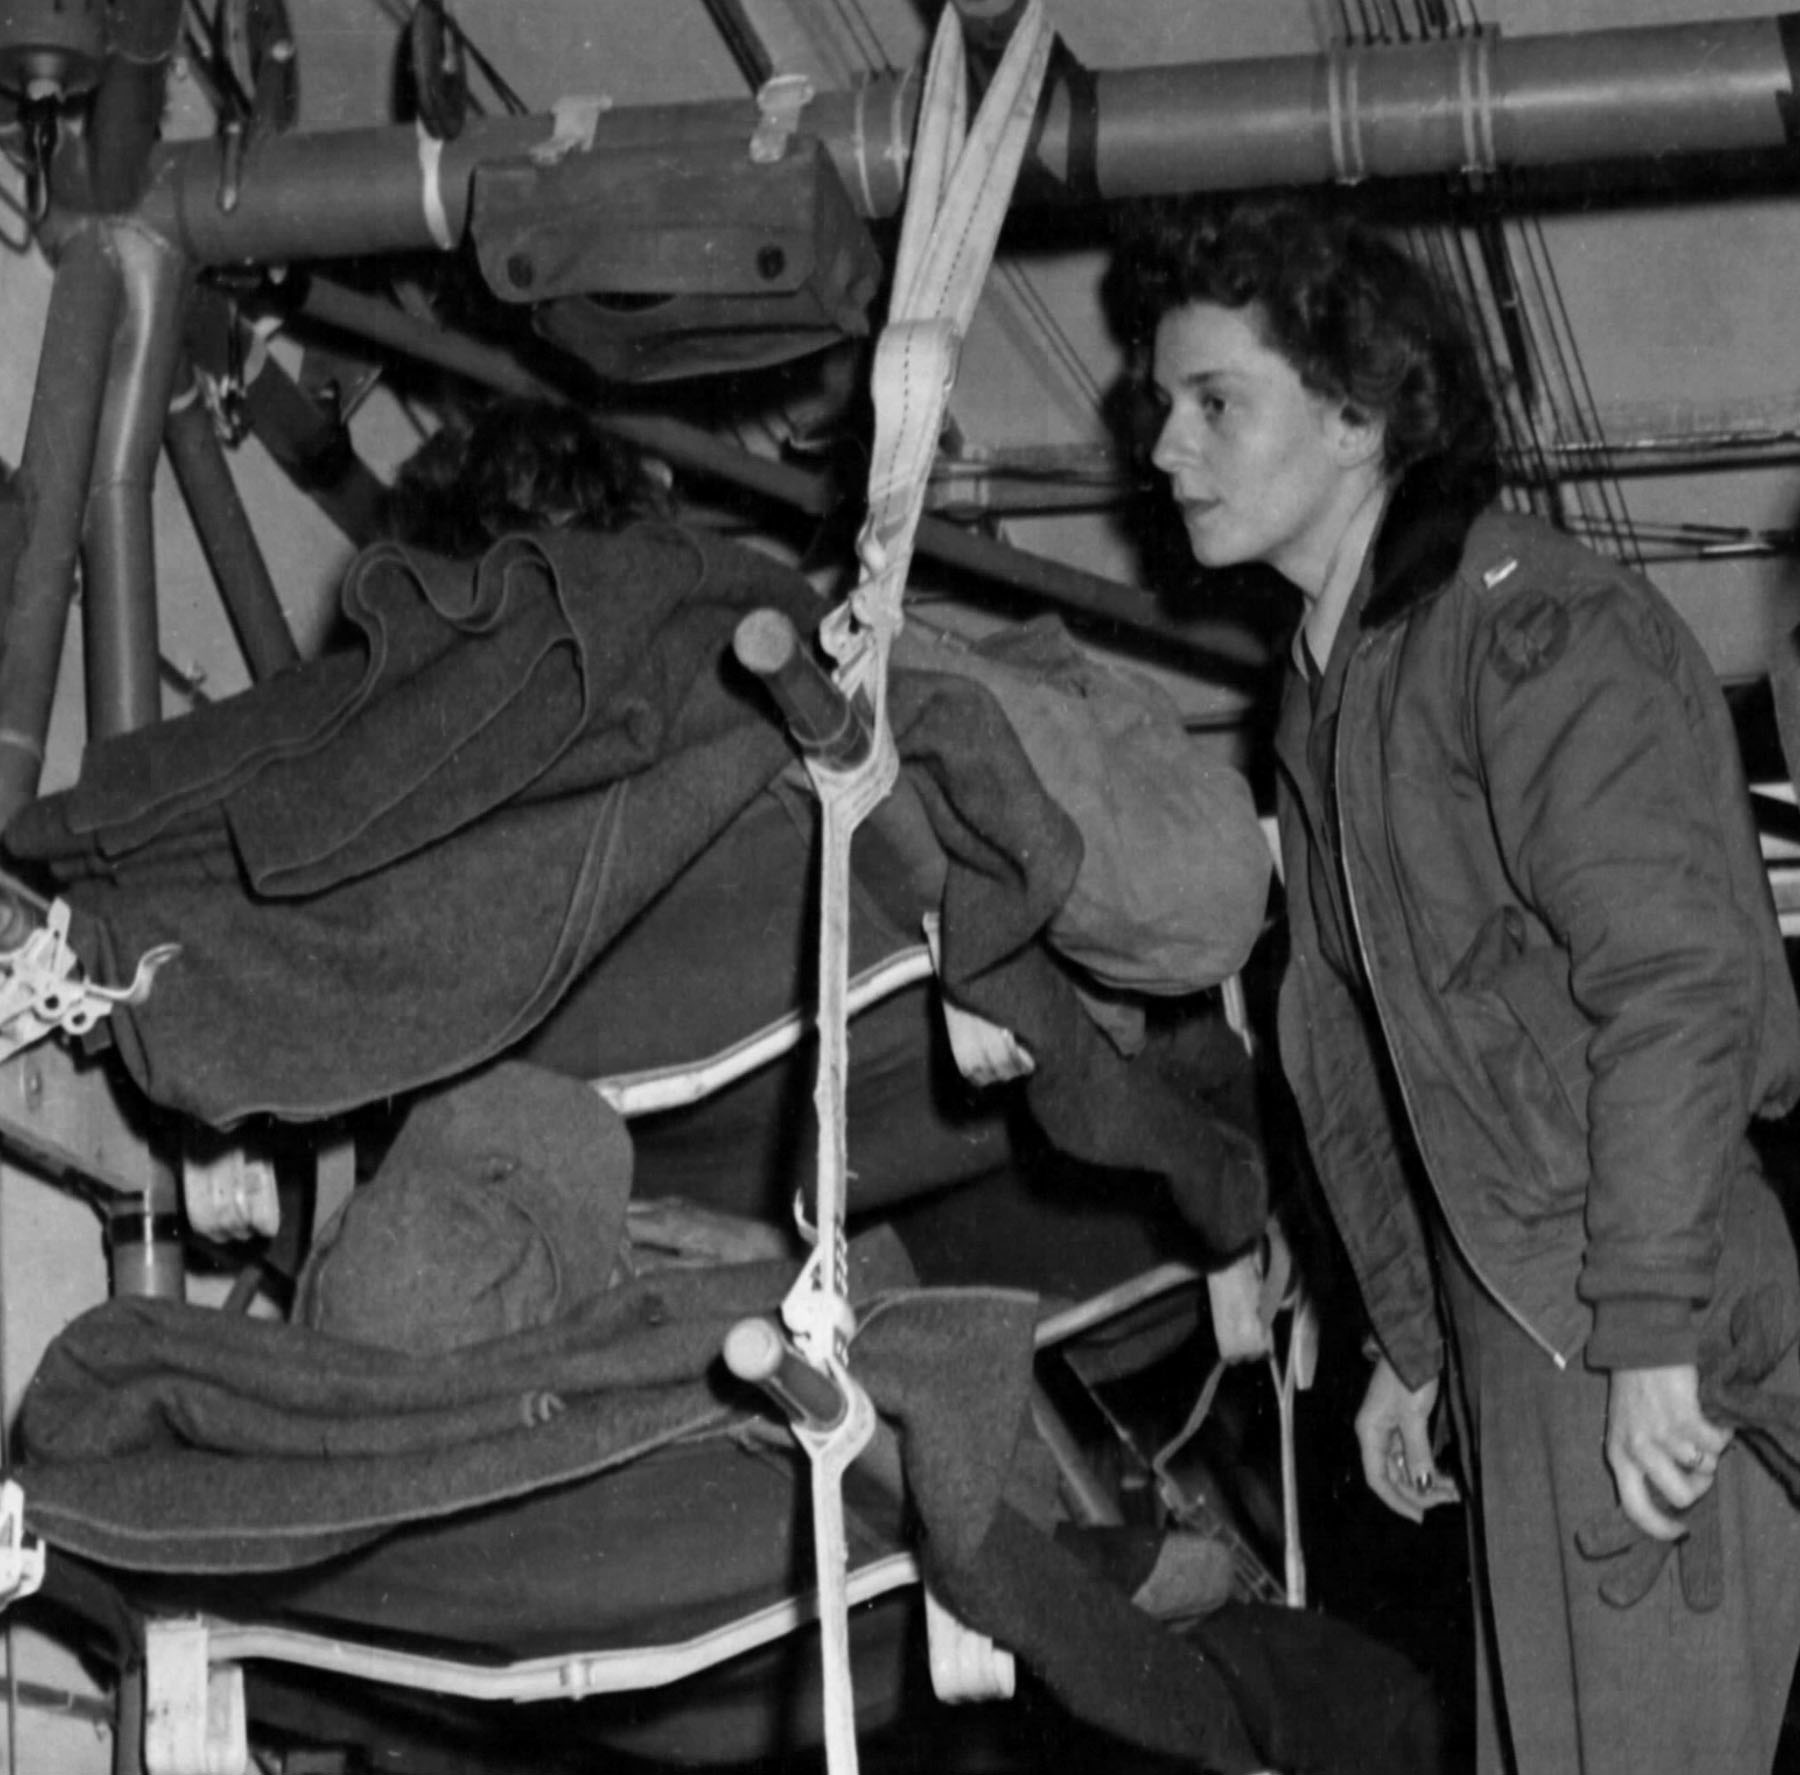 Army Flight Nurse Tends to Patients in CG-4A Glider